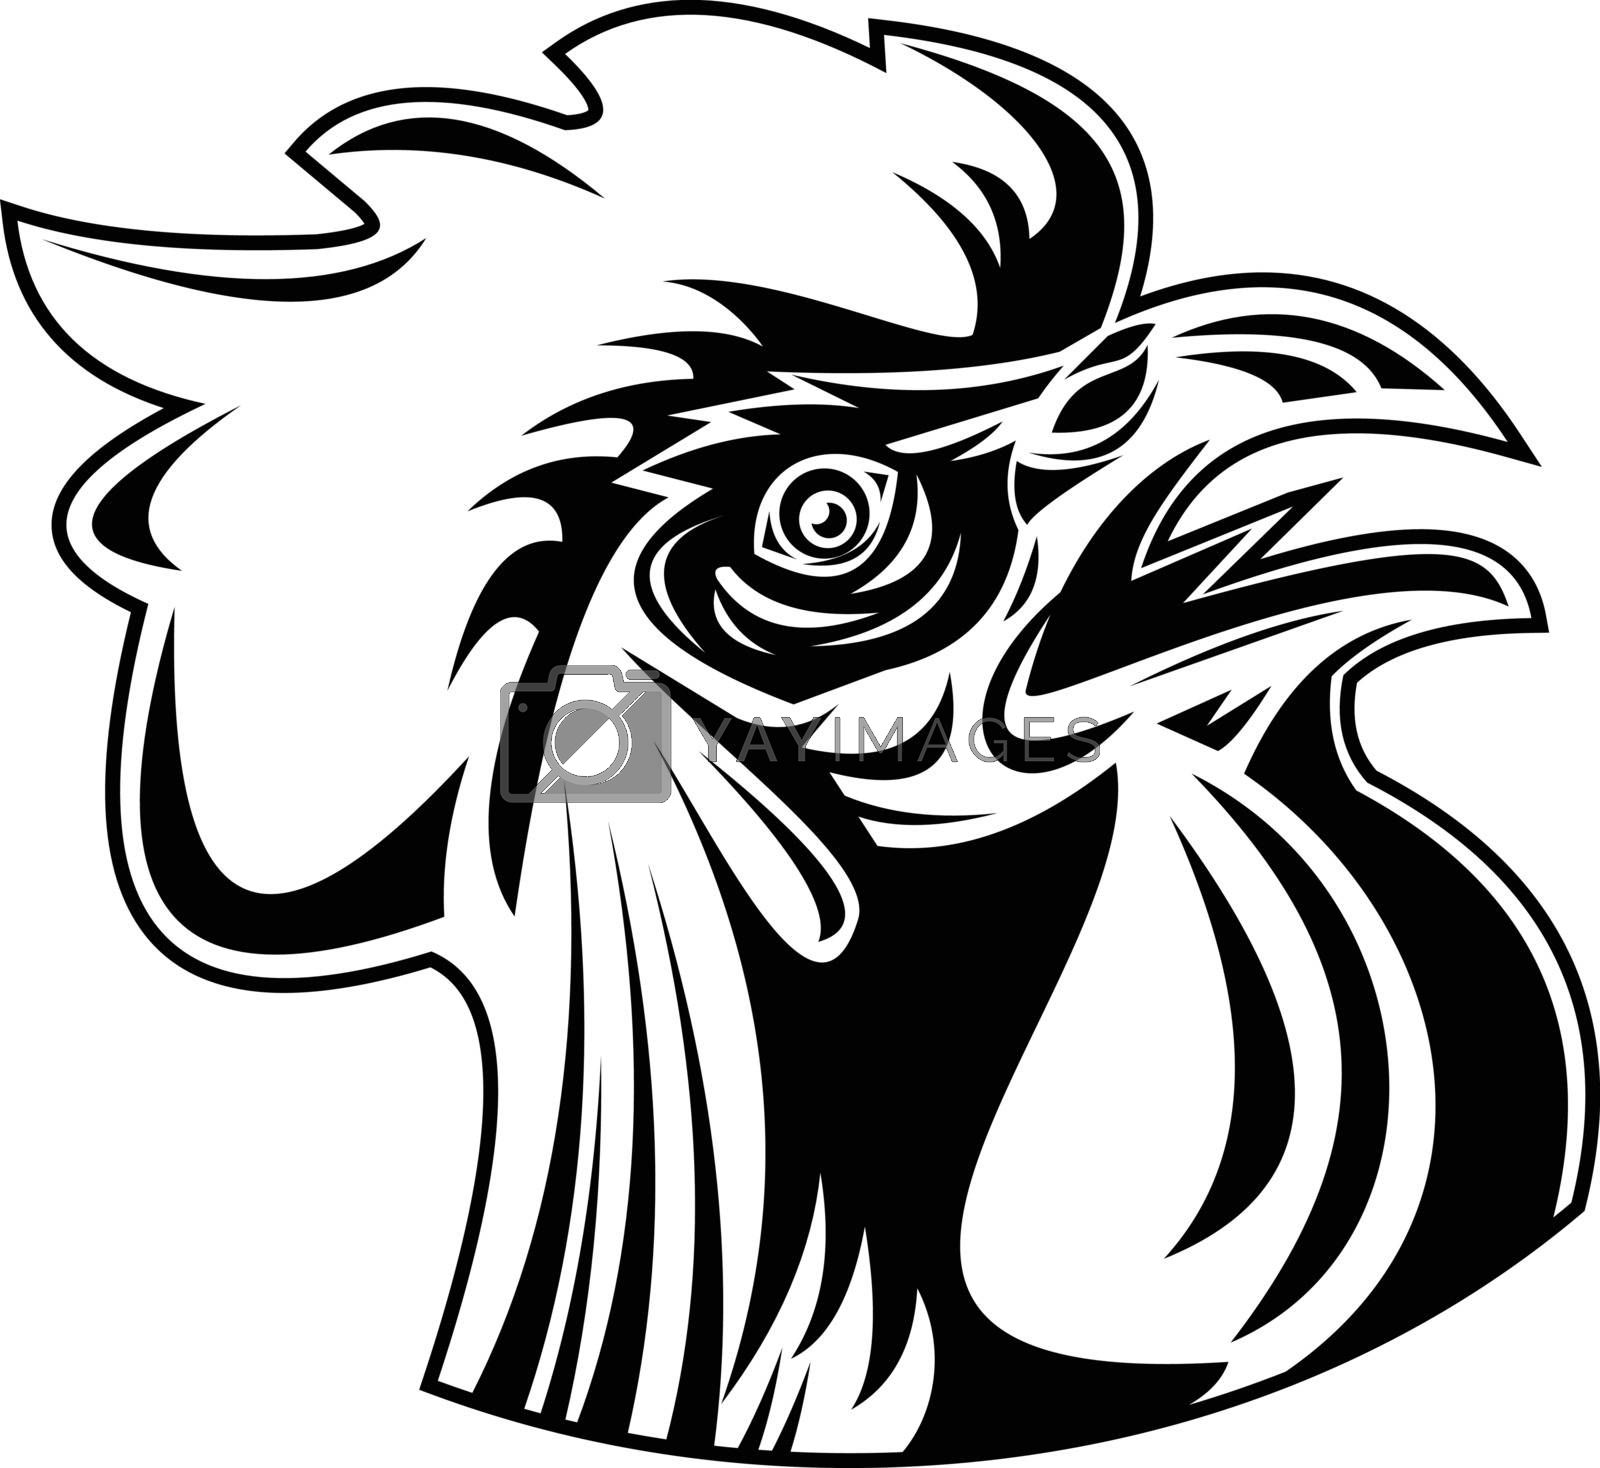 Retro style illustration of head of a rooster, jungle fowl or cockerel, an adult male chicken Gallus gallus domesticus, looking up viewed from side on isolated background done in black and white.